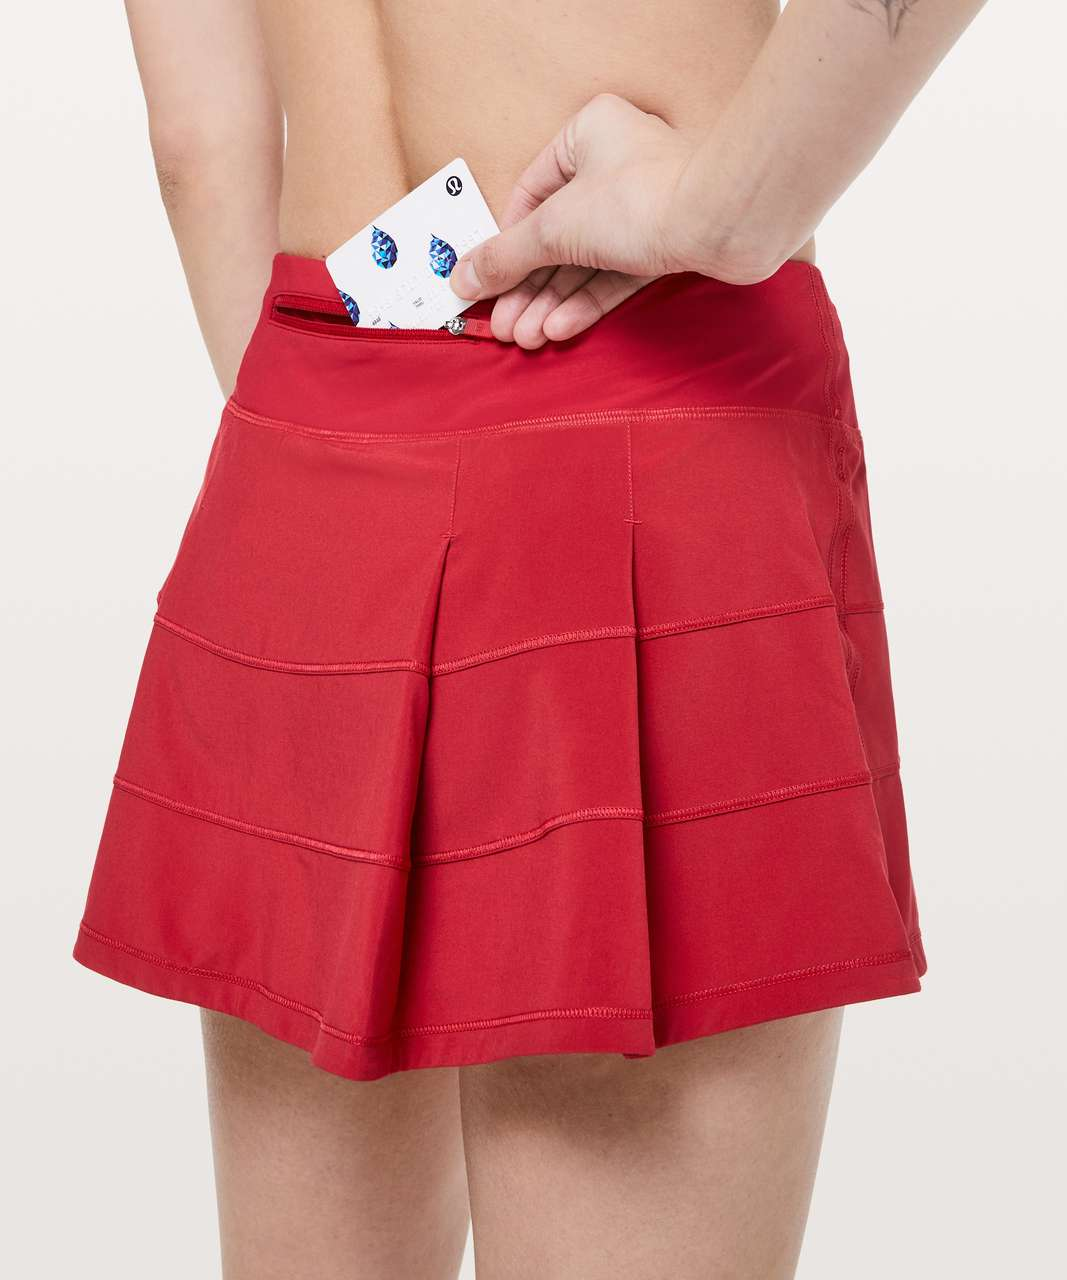 "Lululemon Pace Rival Skirt (Regular) *4-way Stretch 13"" - Dark Red (First Release)"